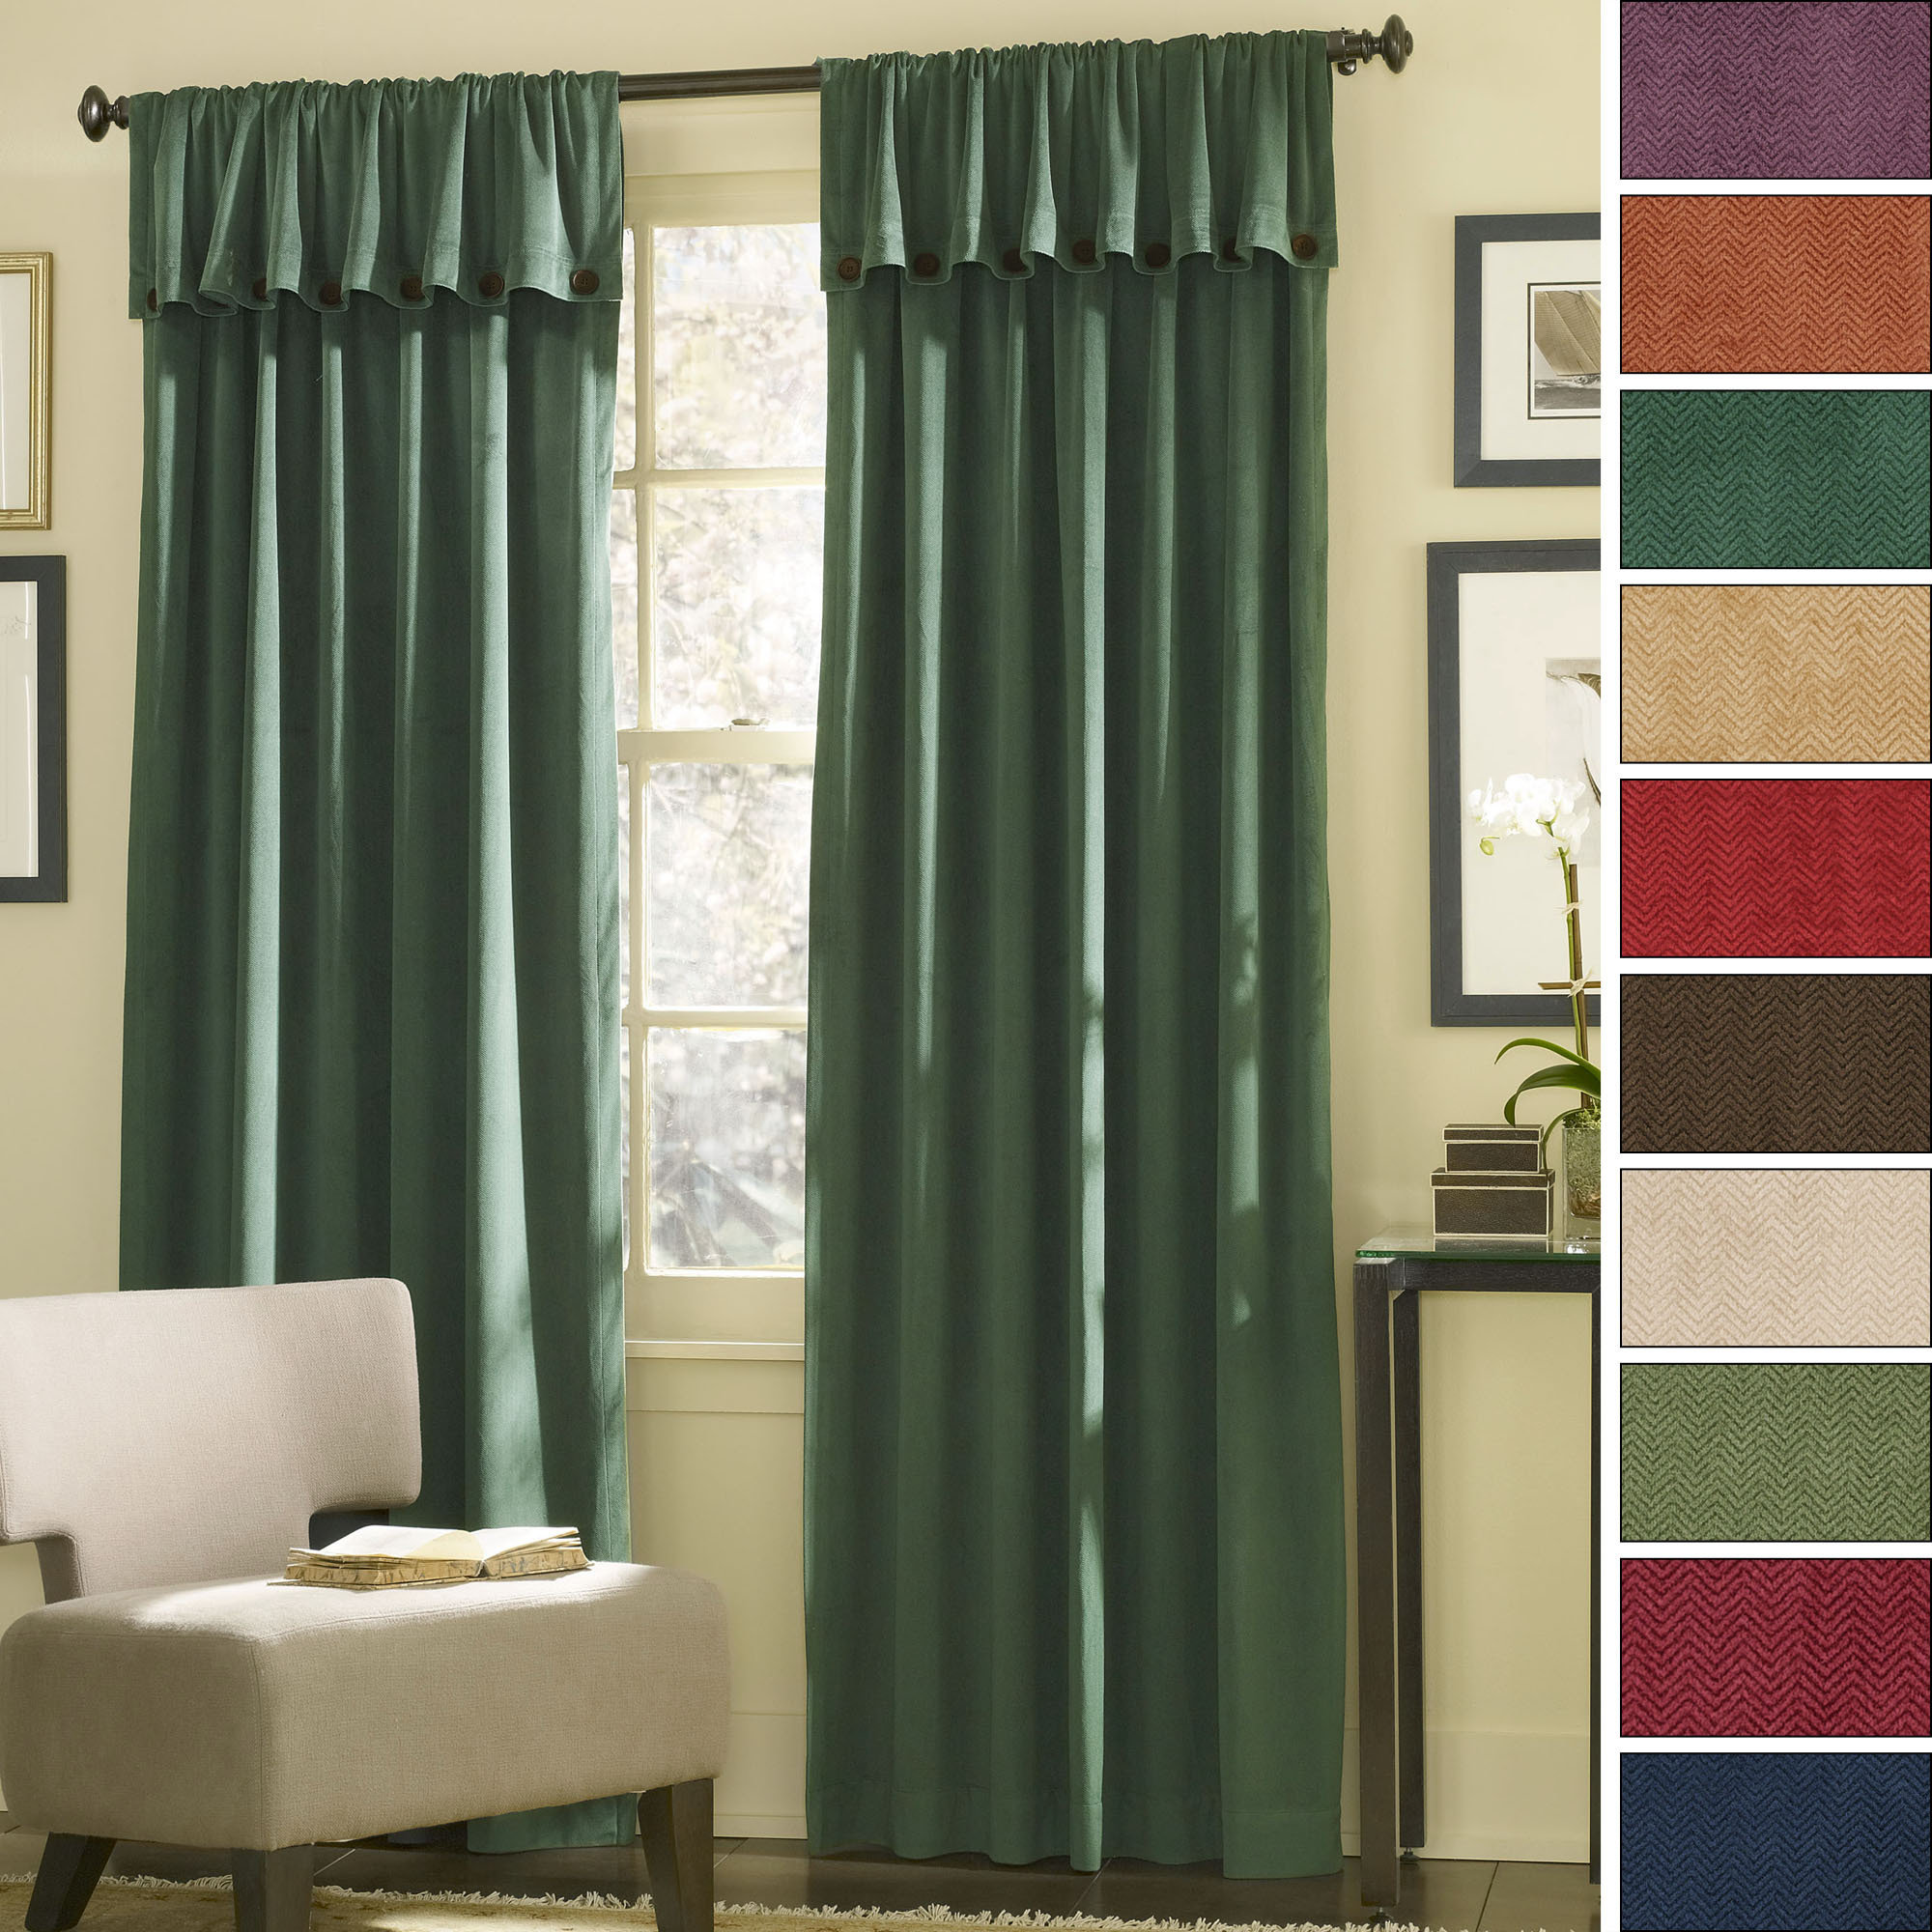 : Patio Door Curtain Ideas